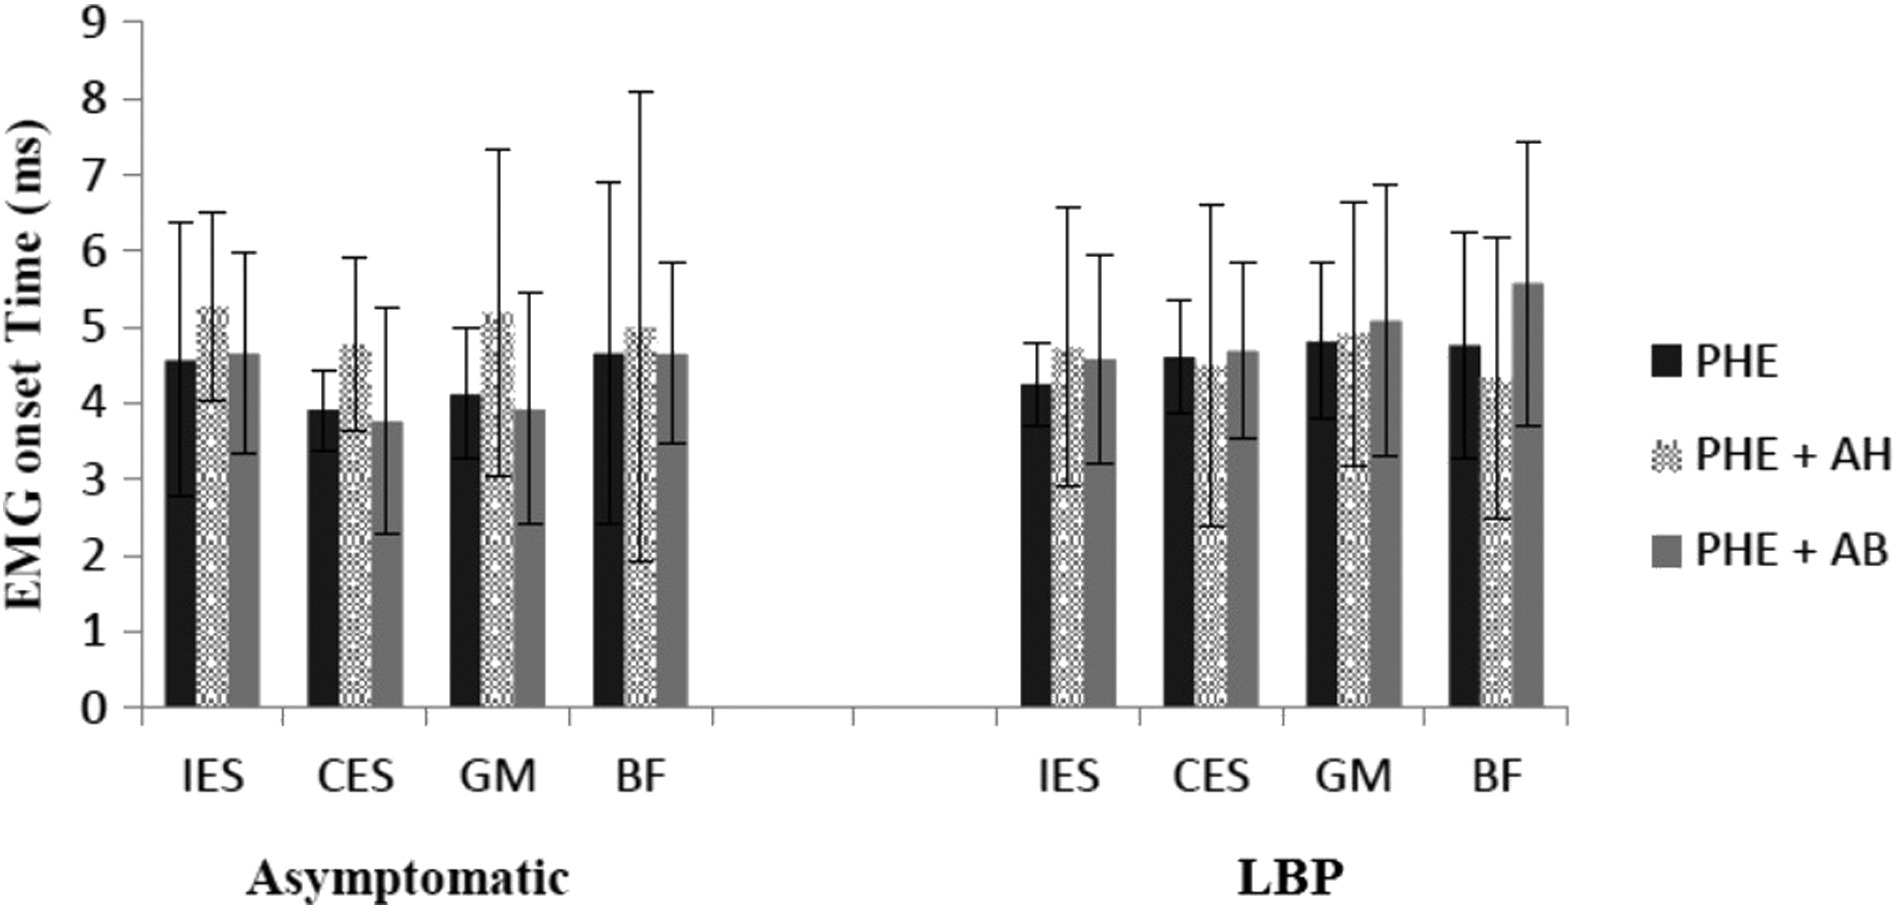 Effect Of The Abdominal Hollowing And Bracing Maneuvers On Activity Pattern Of The Lumbopelvic